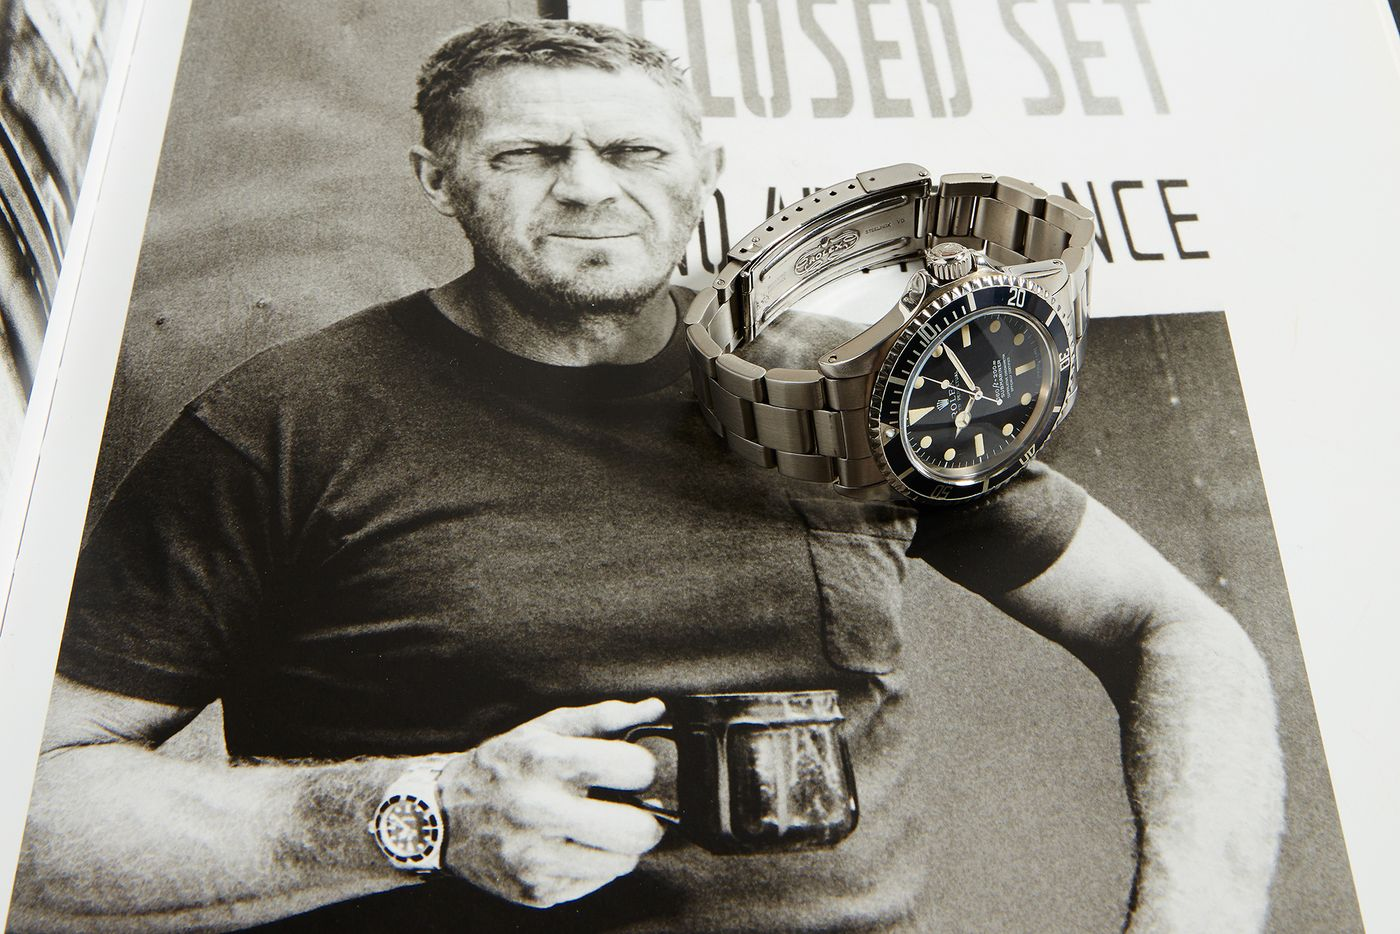 "Phillips returns to New York this December with another iconic Rolex, owned and worn by one of America's most well-known actors. After Paul Newman's ""Paul Newman"", it's time for Steve McQueen's Submariner."